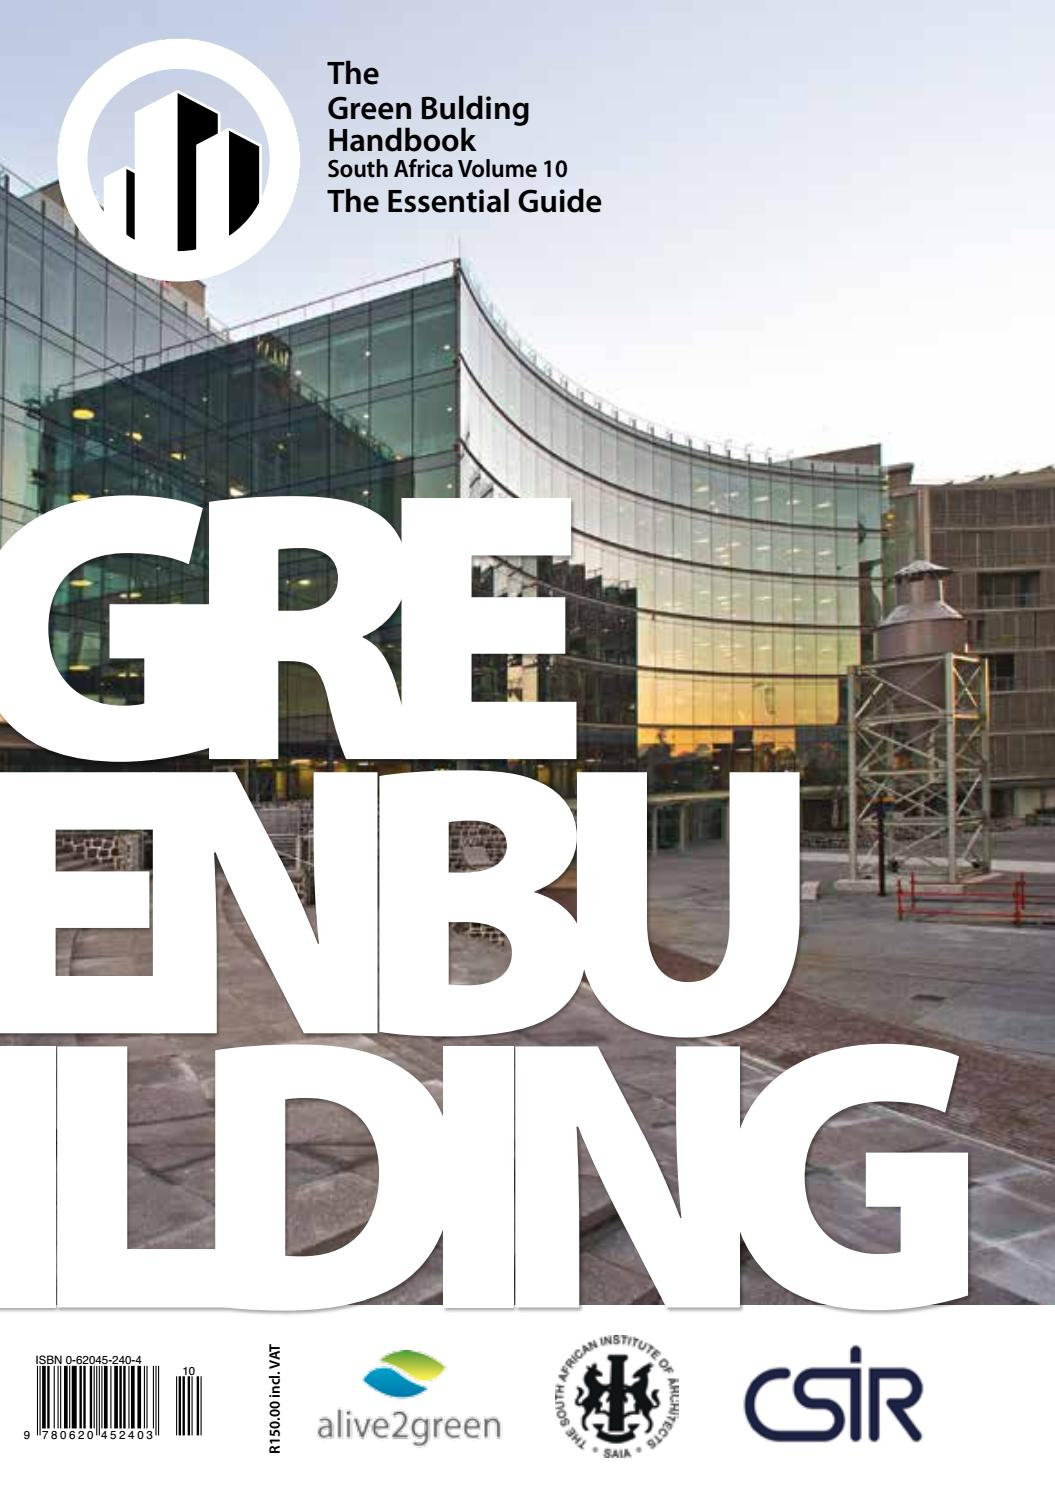 Green Building Handbook Vol 10 by Alive2Green - issuu